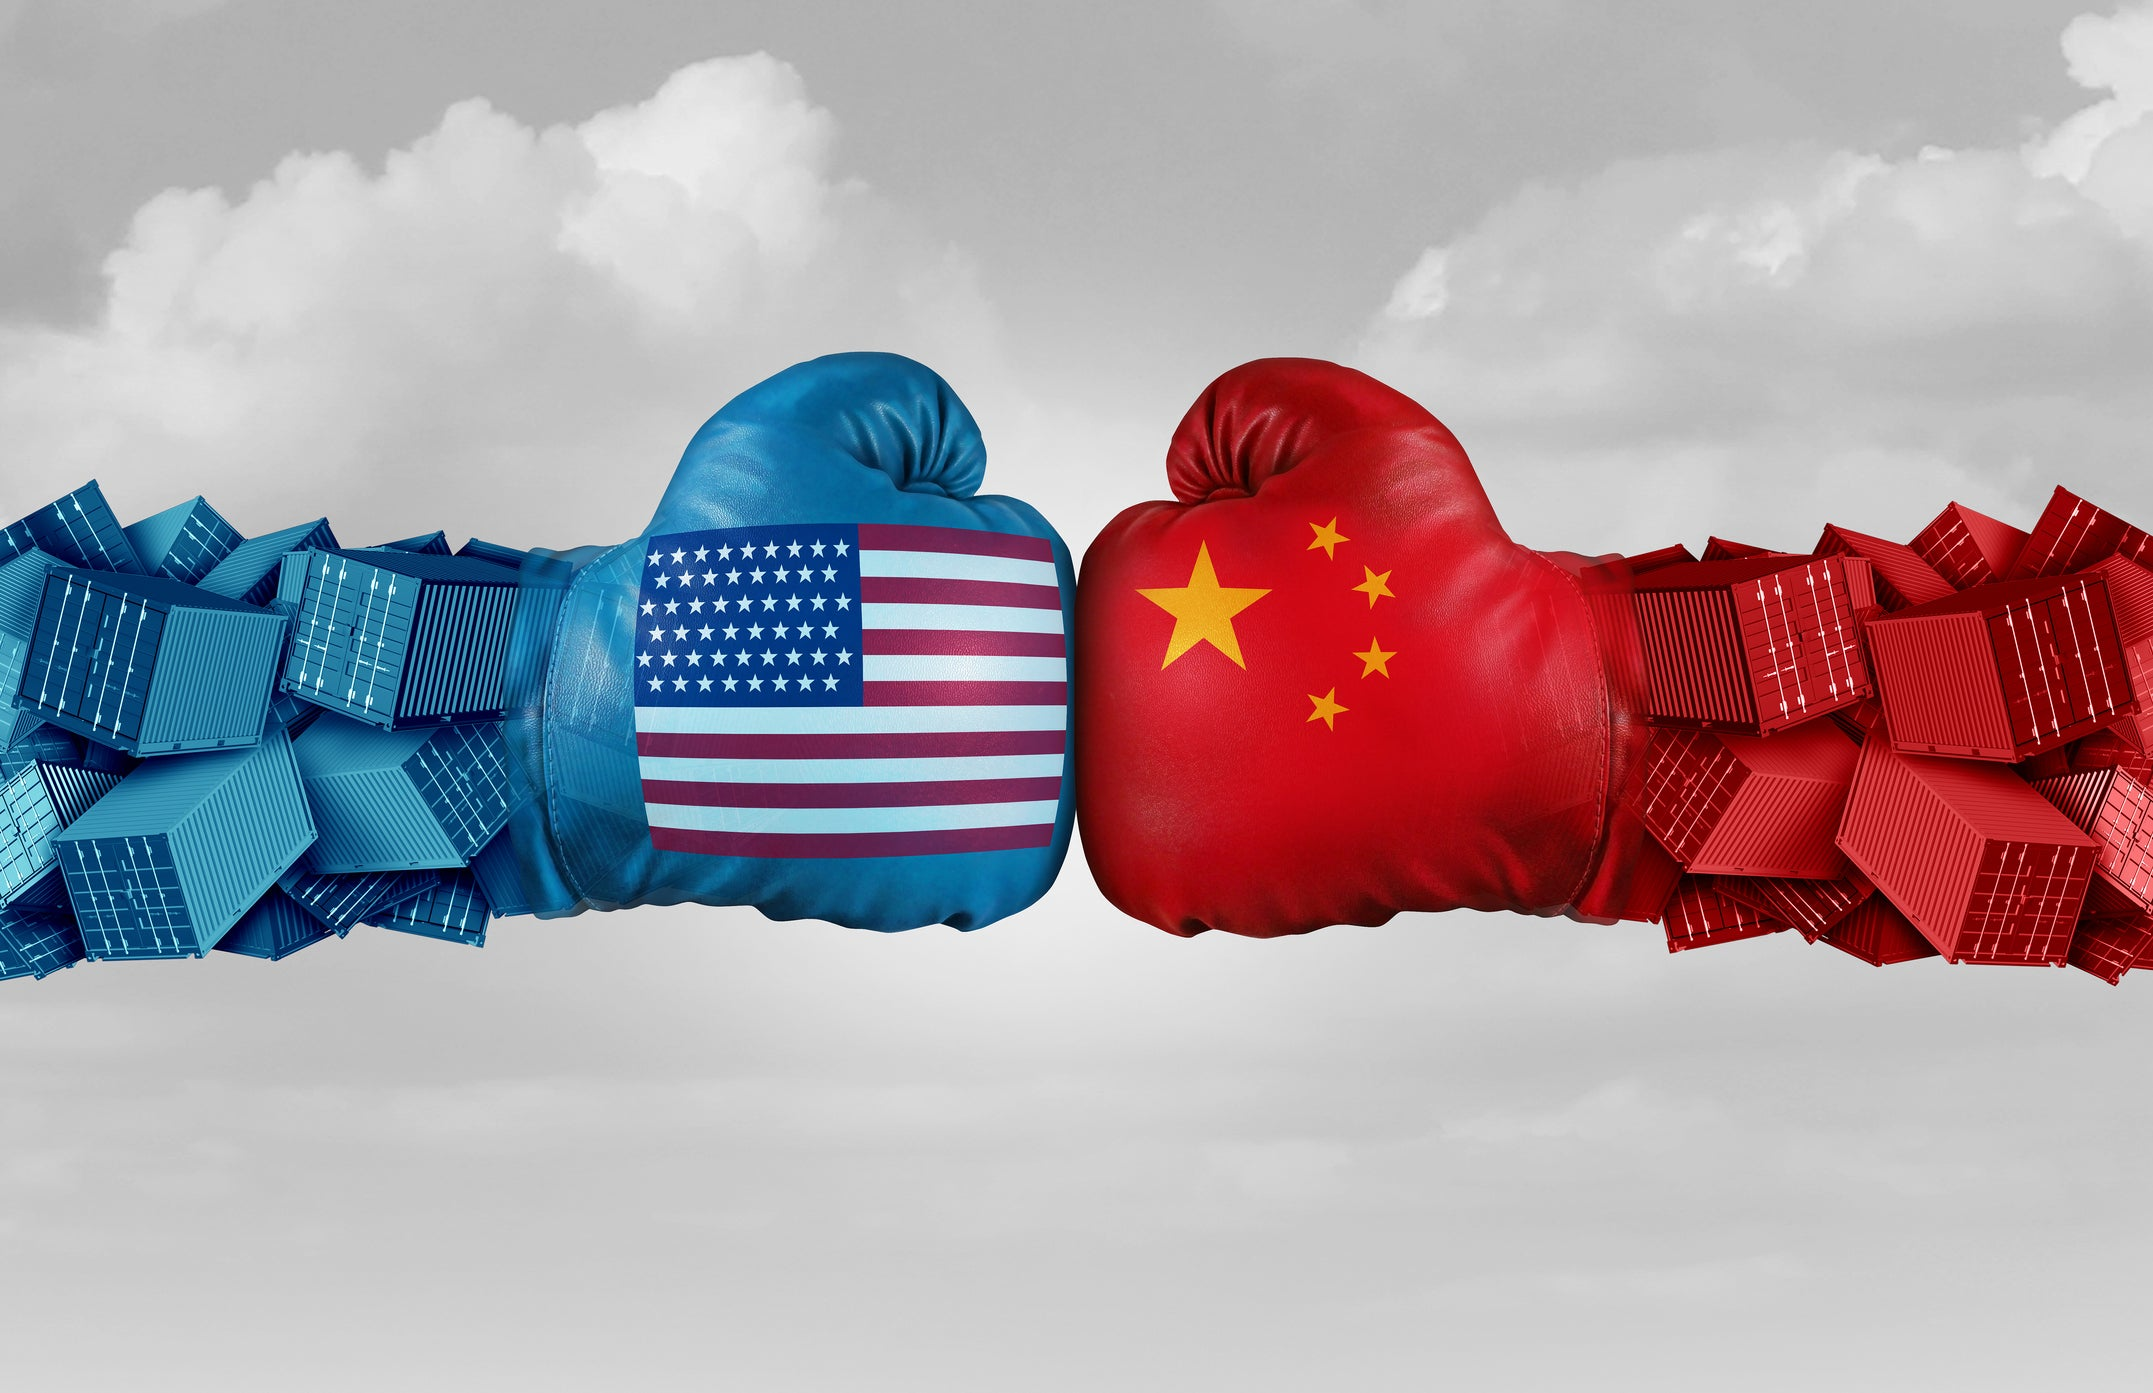 Two boxing gloves, one with the U.S. flag painted on it, one with the China flag painted on it, touch.